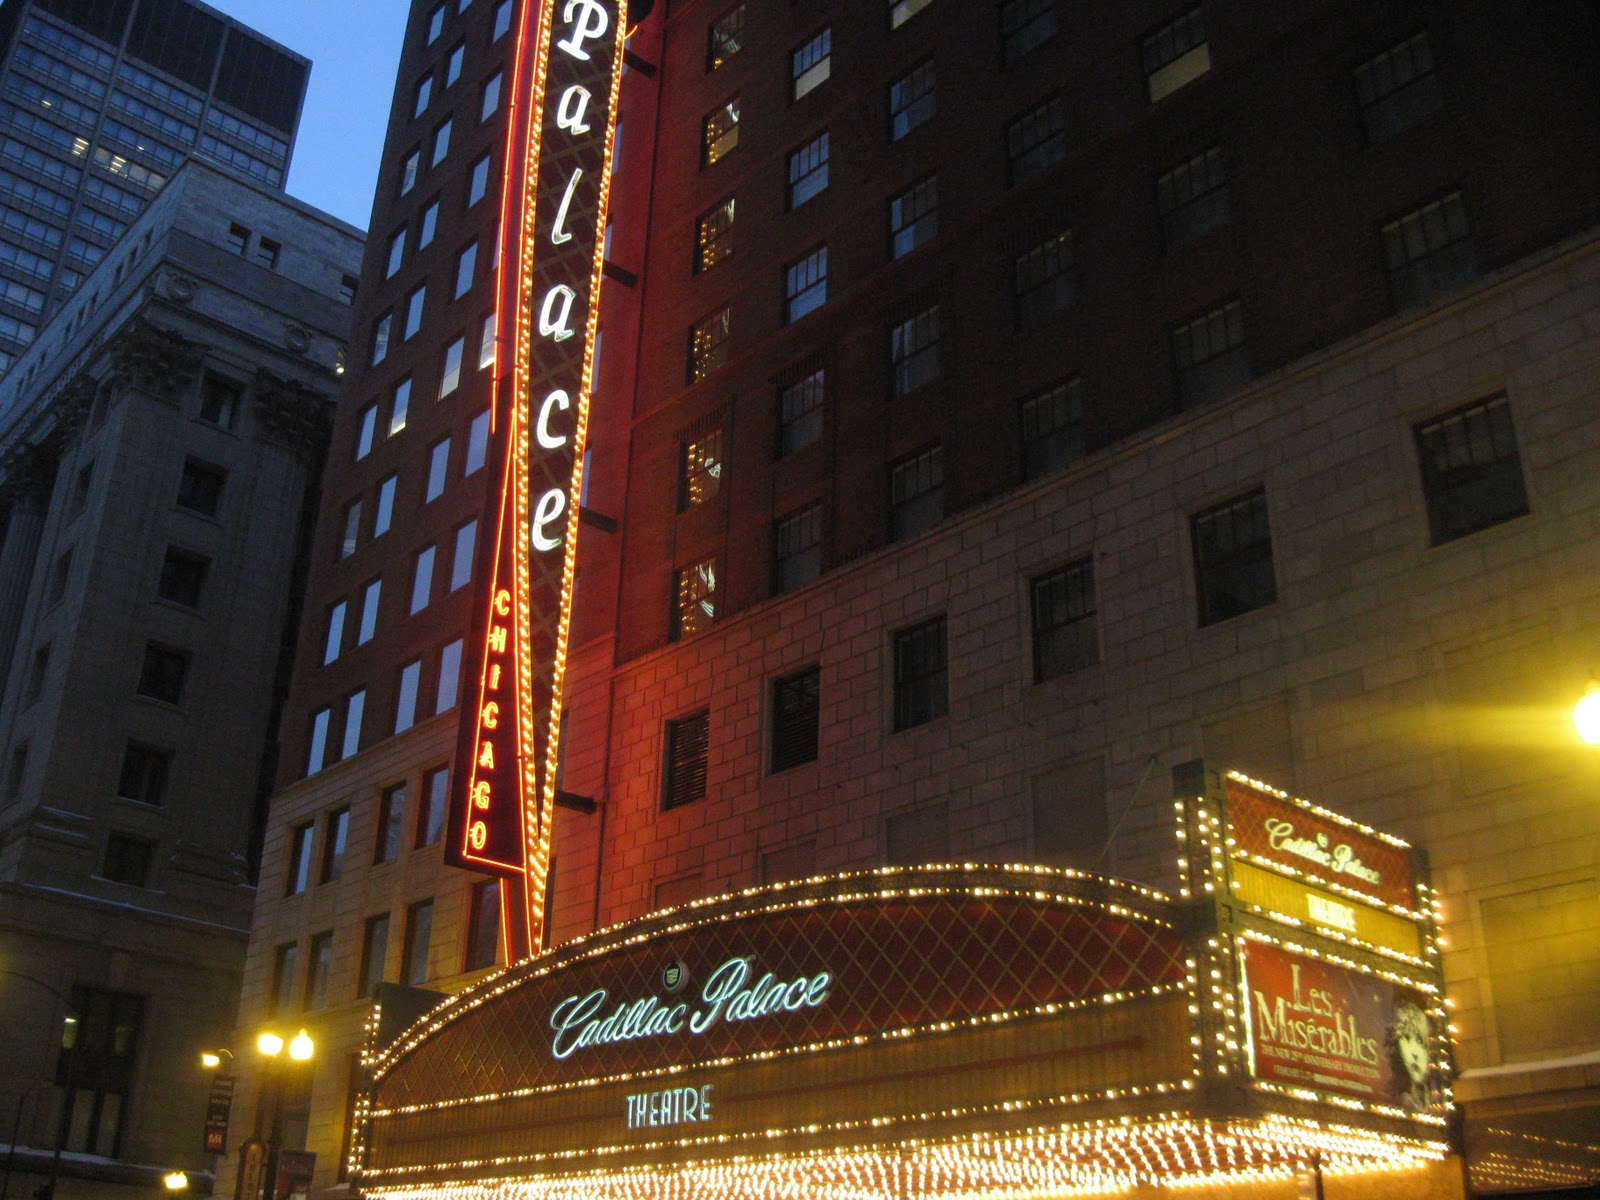 Cadillac Palace Theatre Information